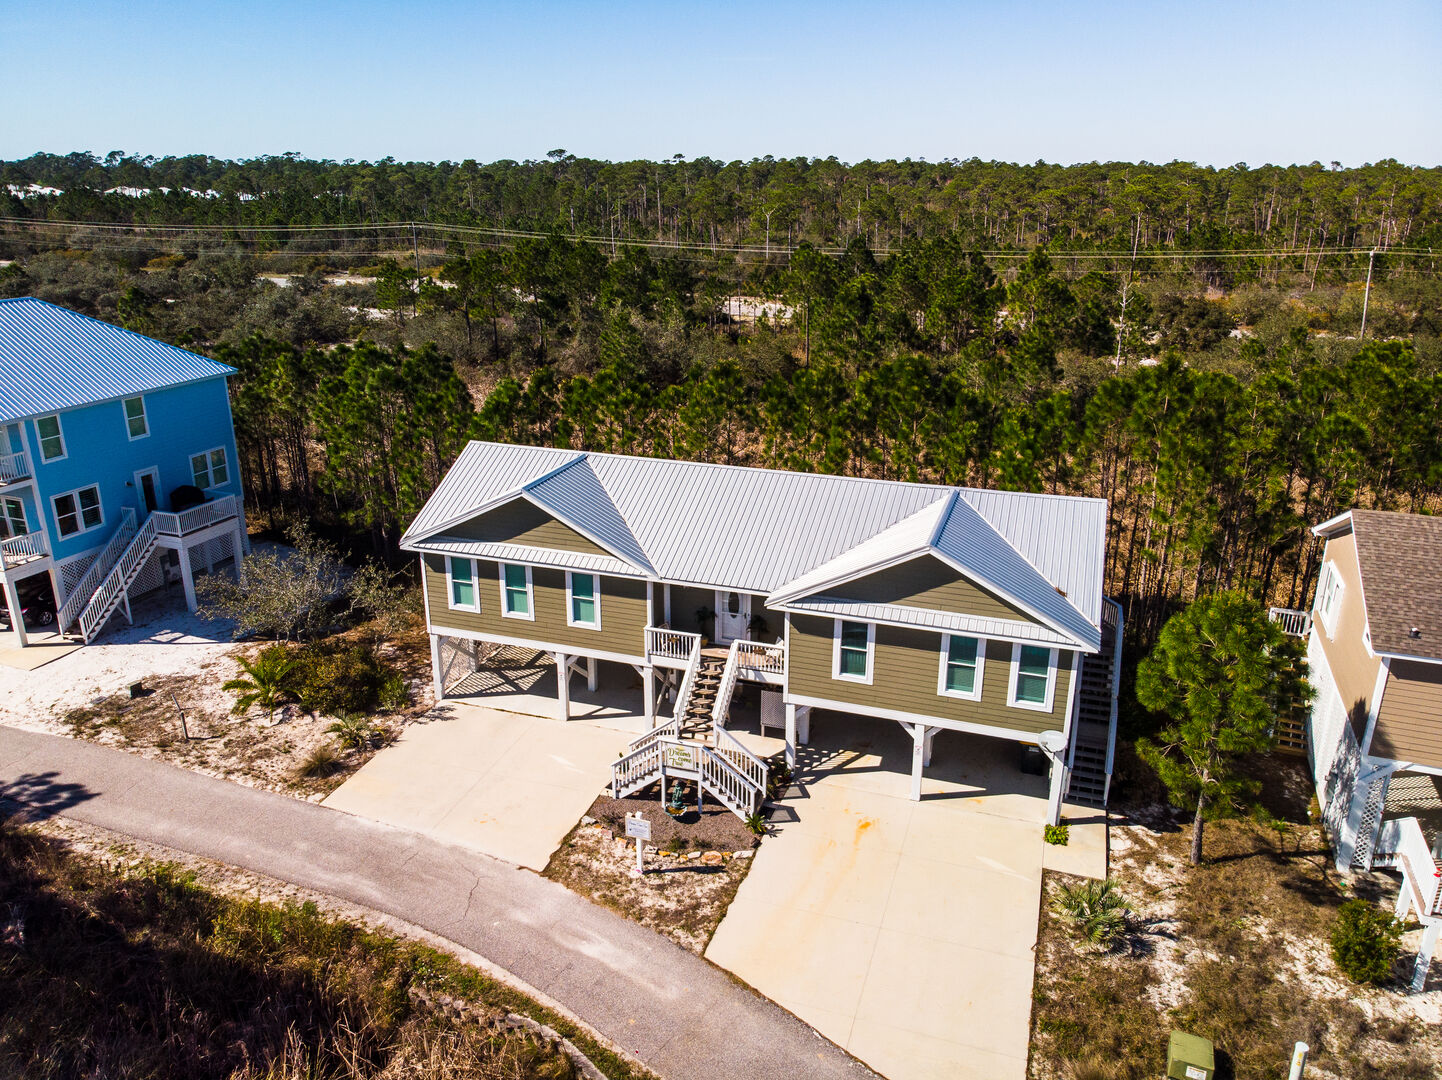 A Bird's Eye View of the Vacation Rental in Fort Morgan.